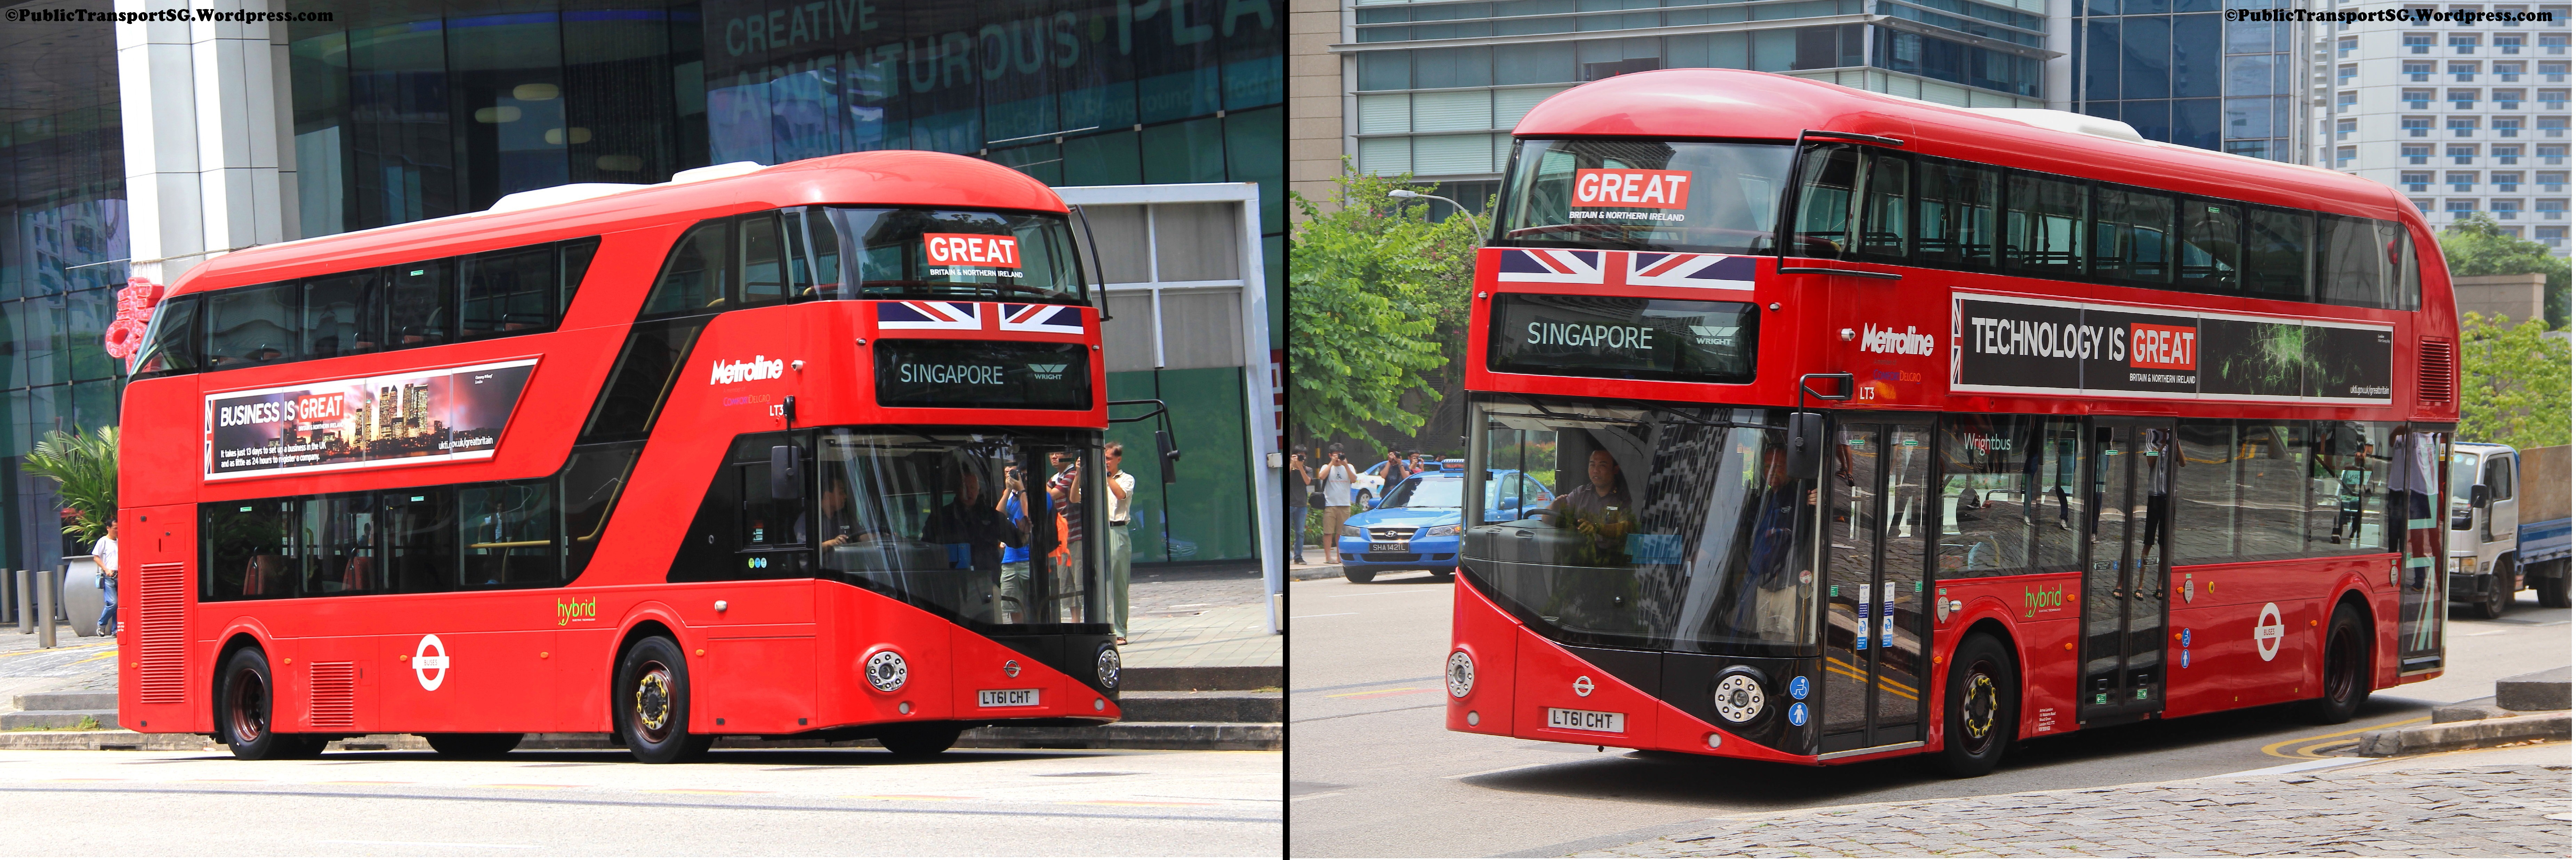 New Bus for London visits Singapore